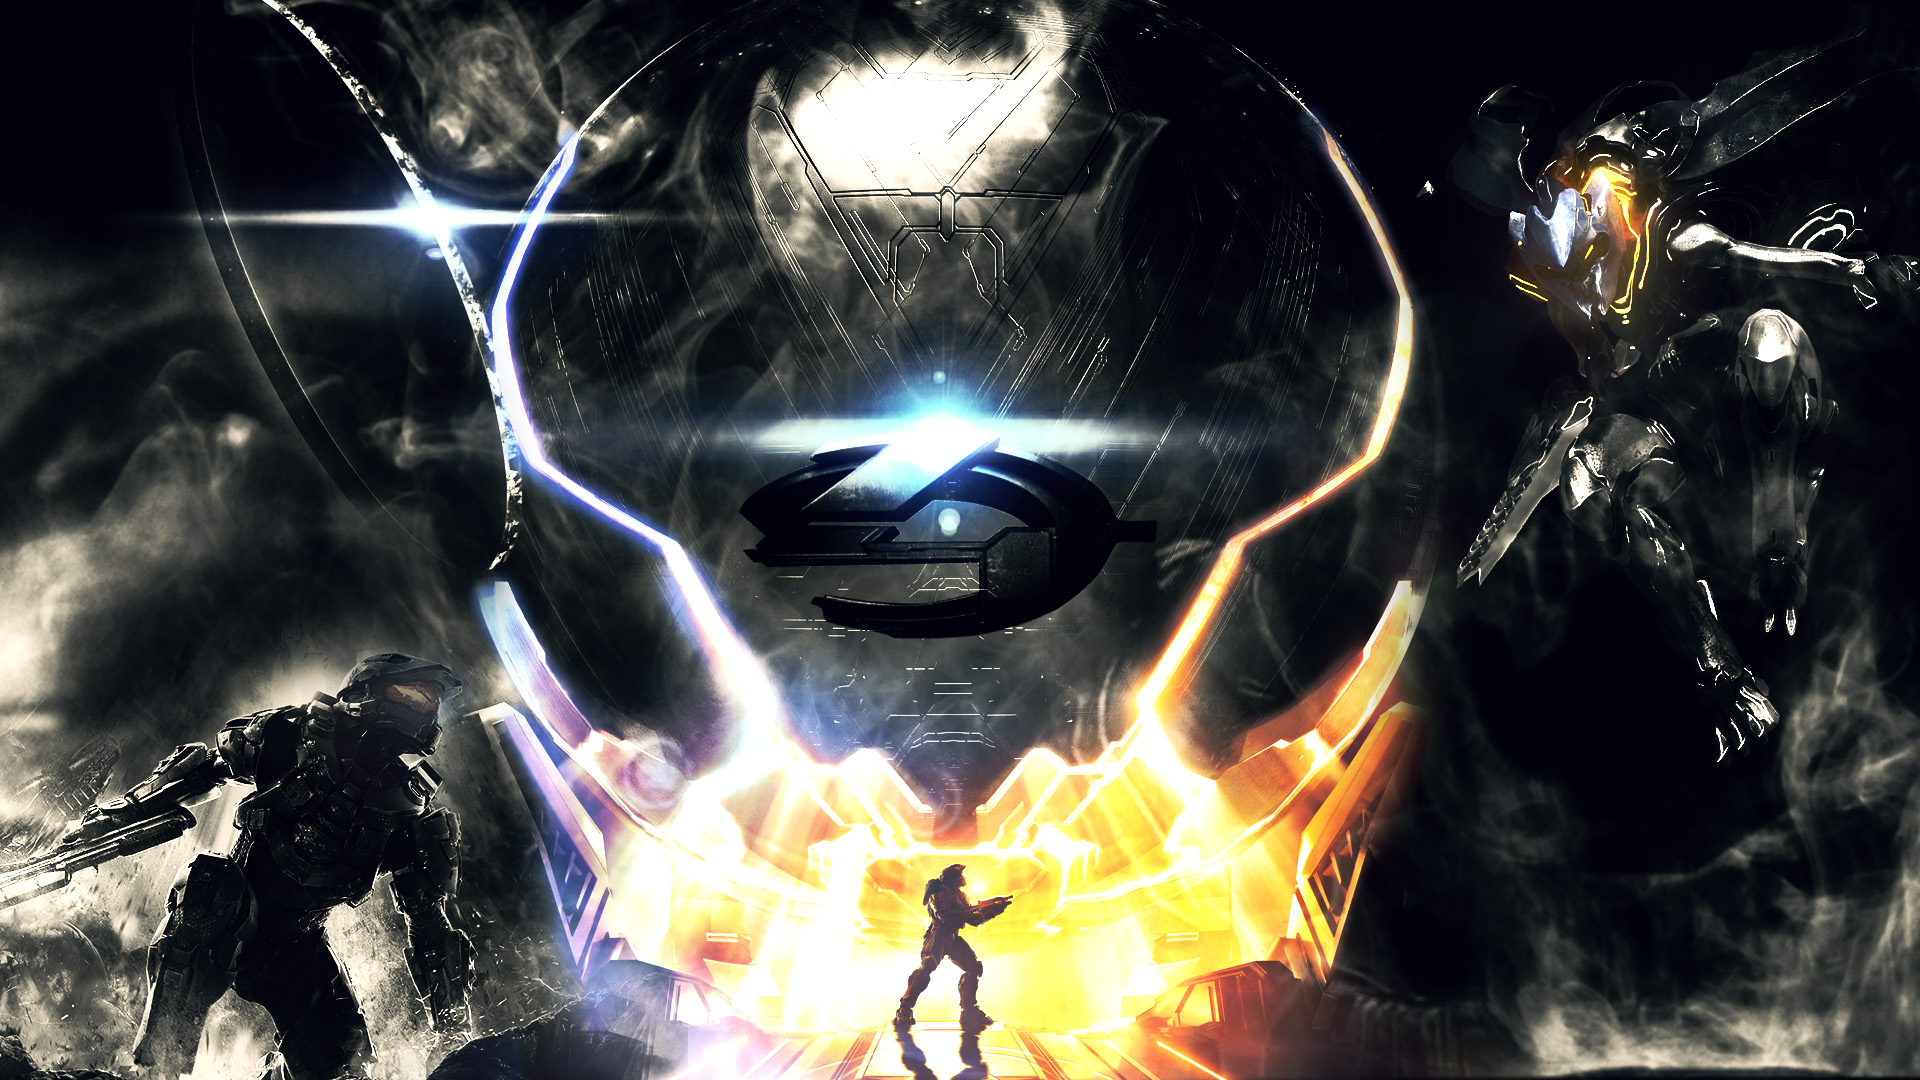 related posts halo 4 wallpaper forza motorsport wallpaper wrap up 3 28 1920x1080